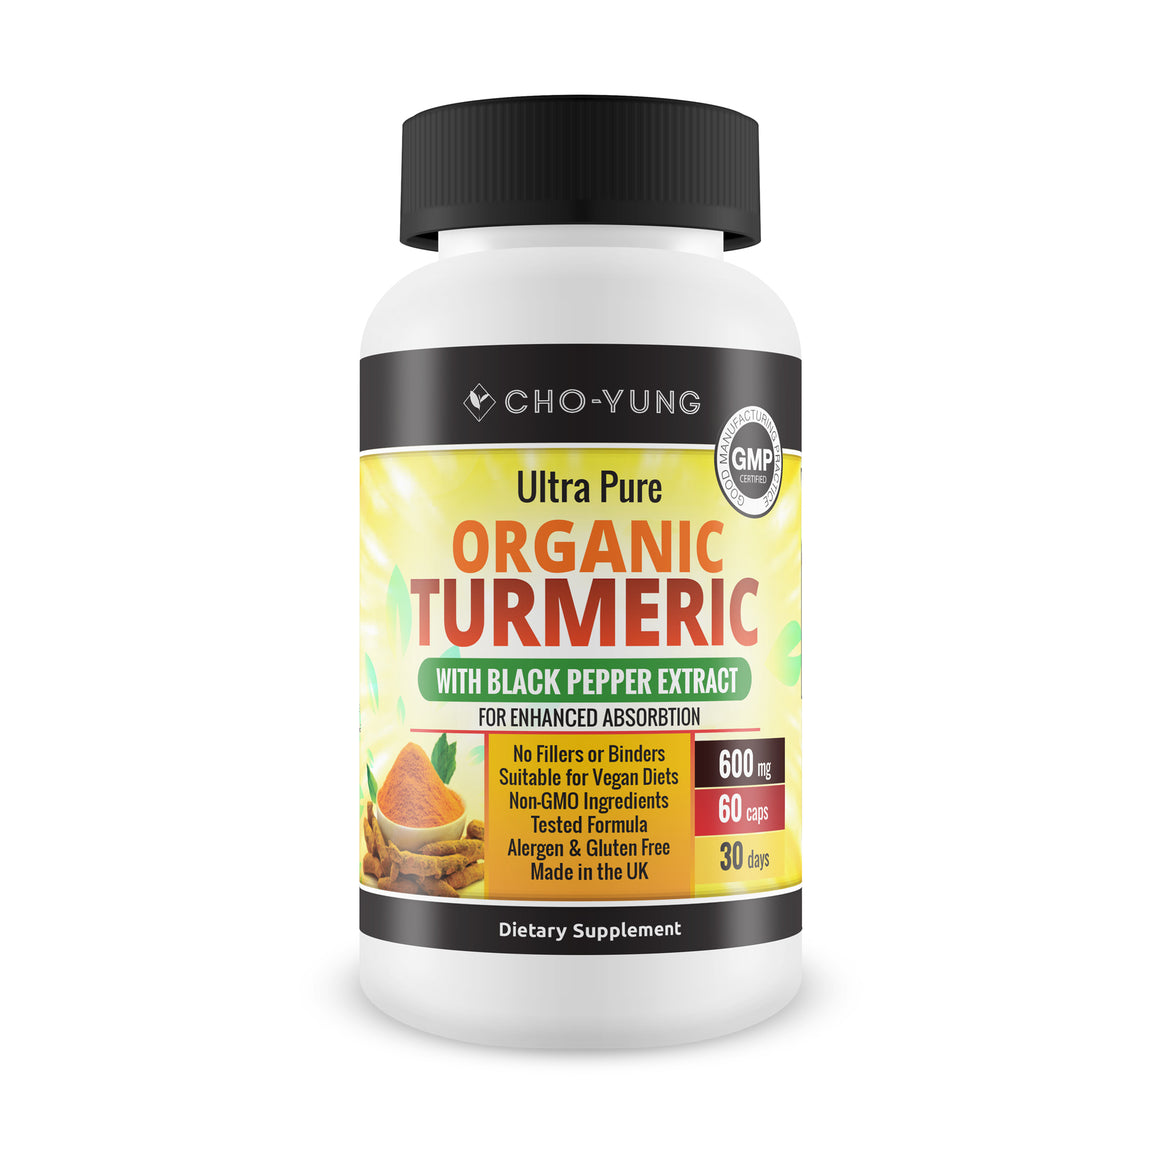 Cho-Yung Daily Organic Turmeric 95% Curcumin & Black Pepper Extract 600mg